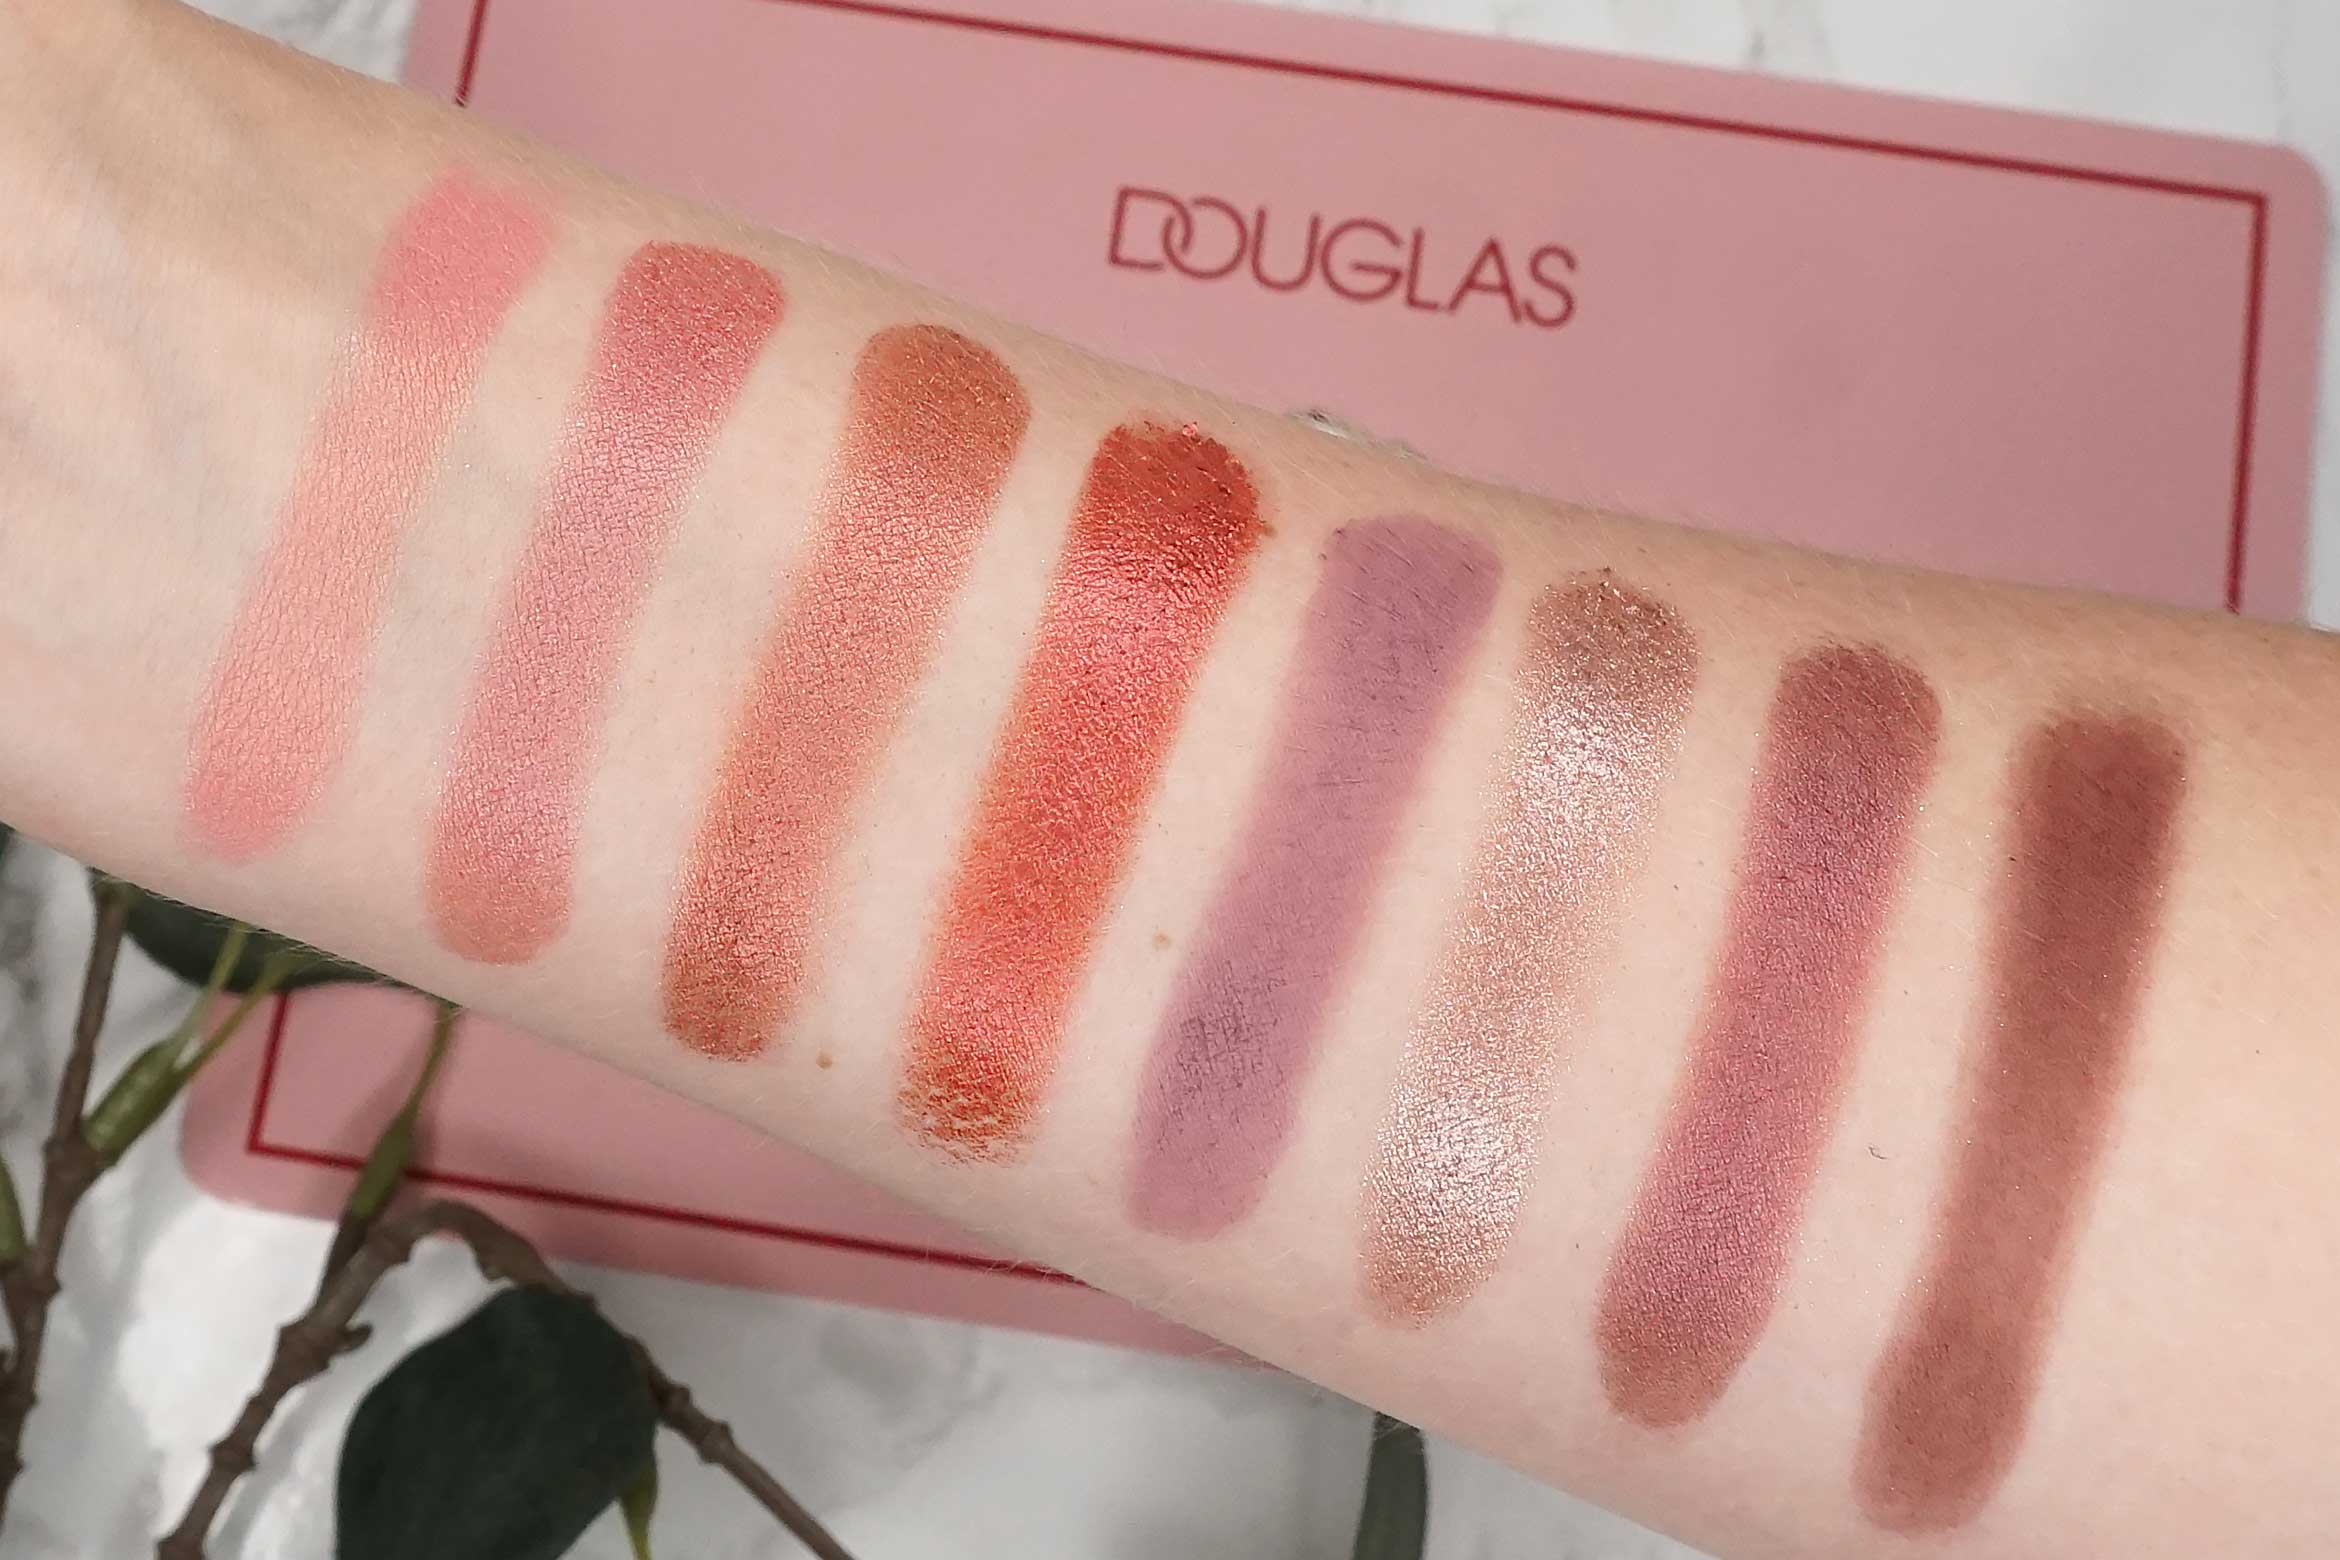 douglas-deluxe-palette-swatch-review-1